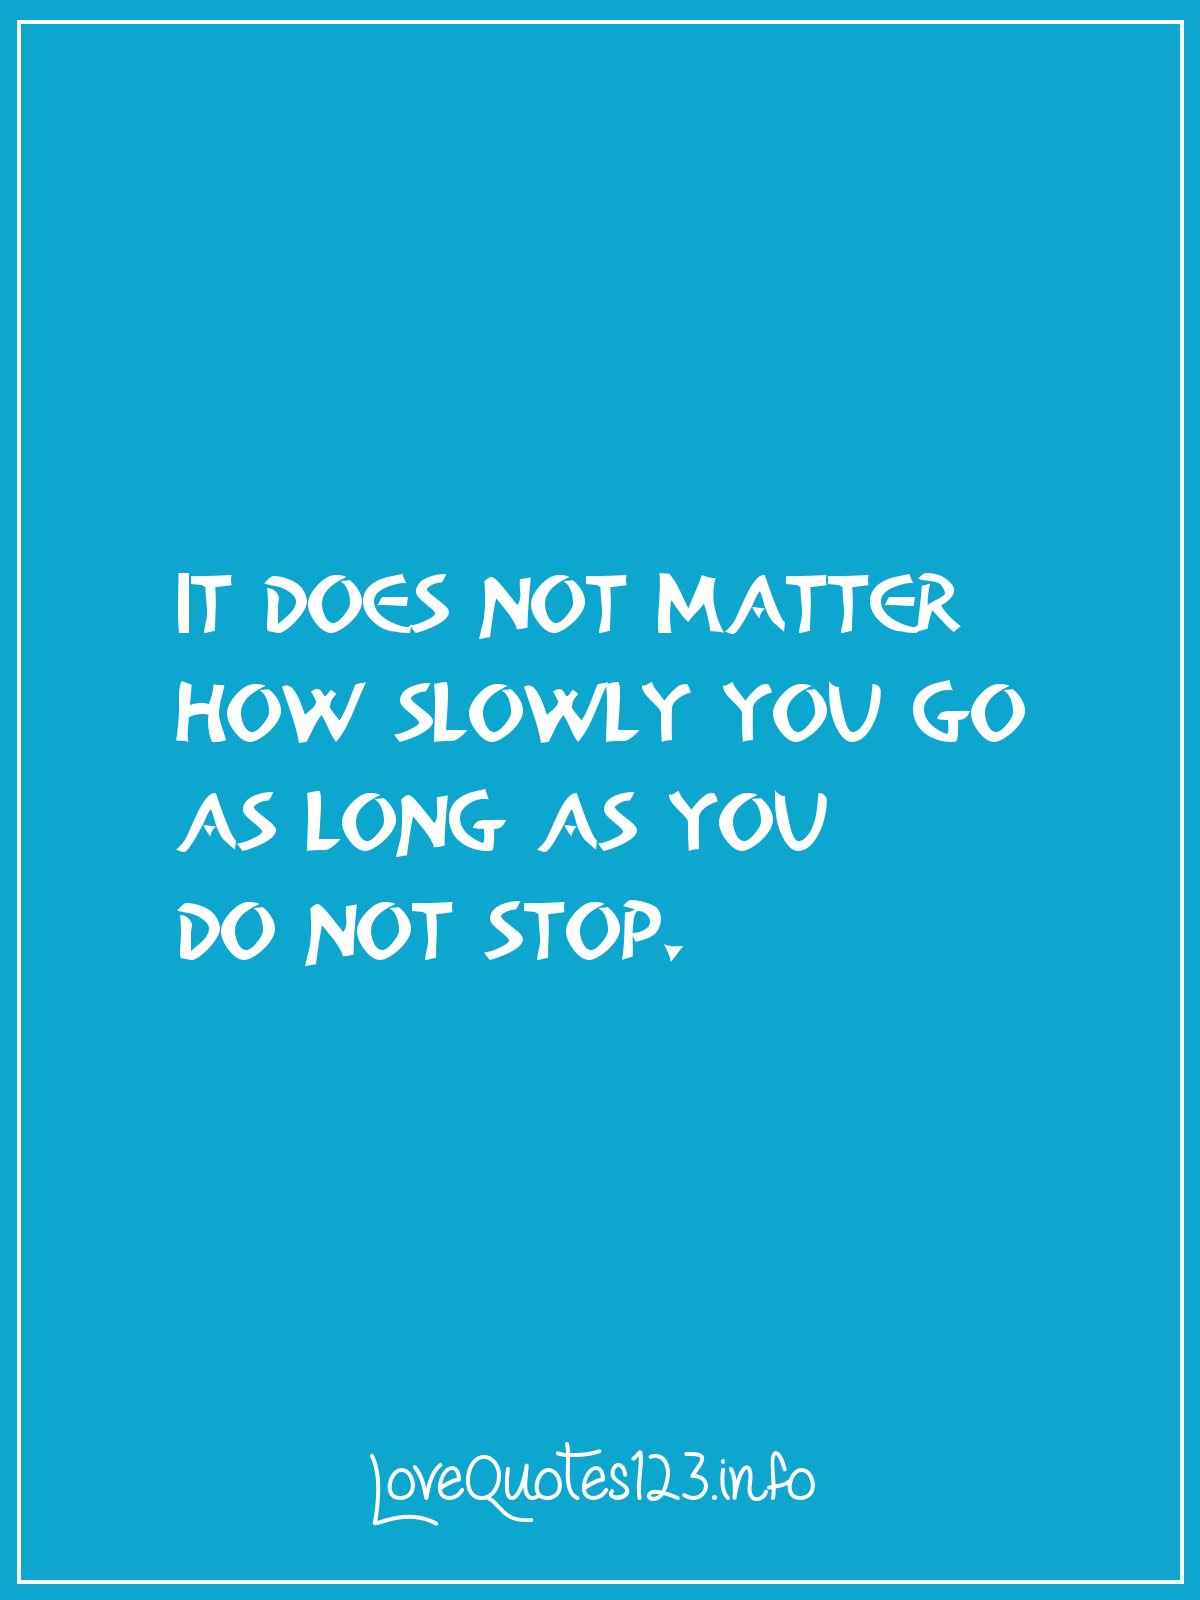 Continuous Efforts Inspirational Quotes Fitness Inspiration Quotes Words Words Of Wisdom